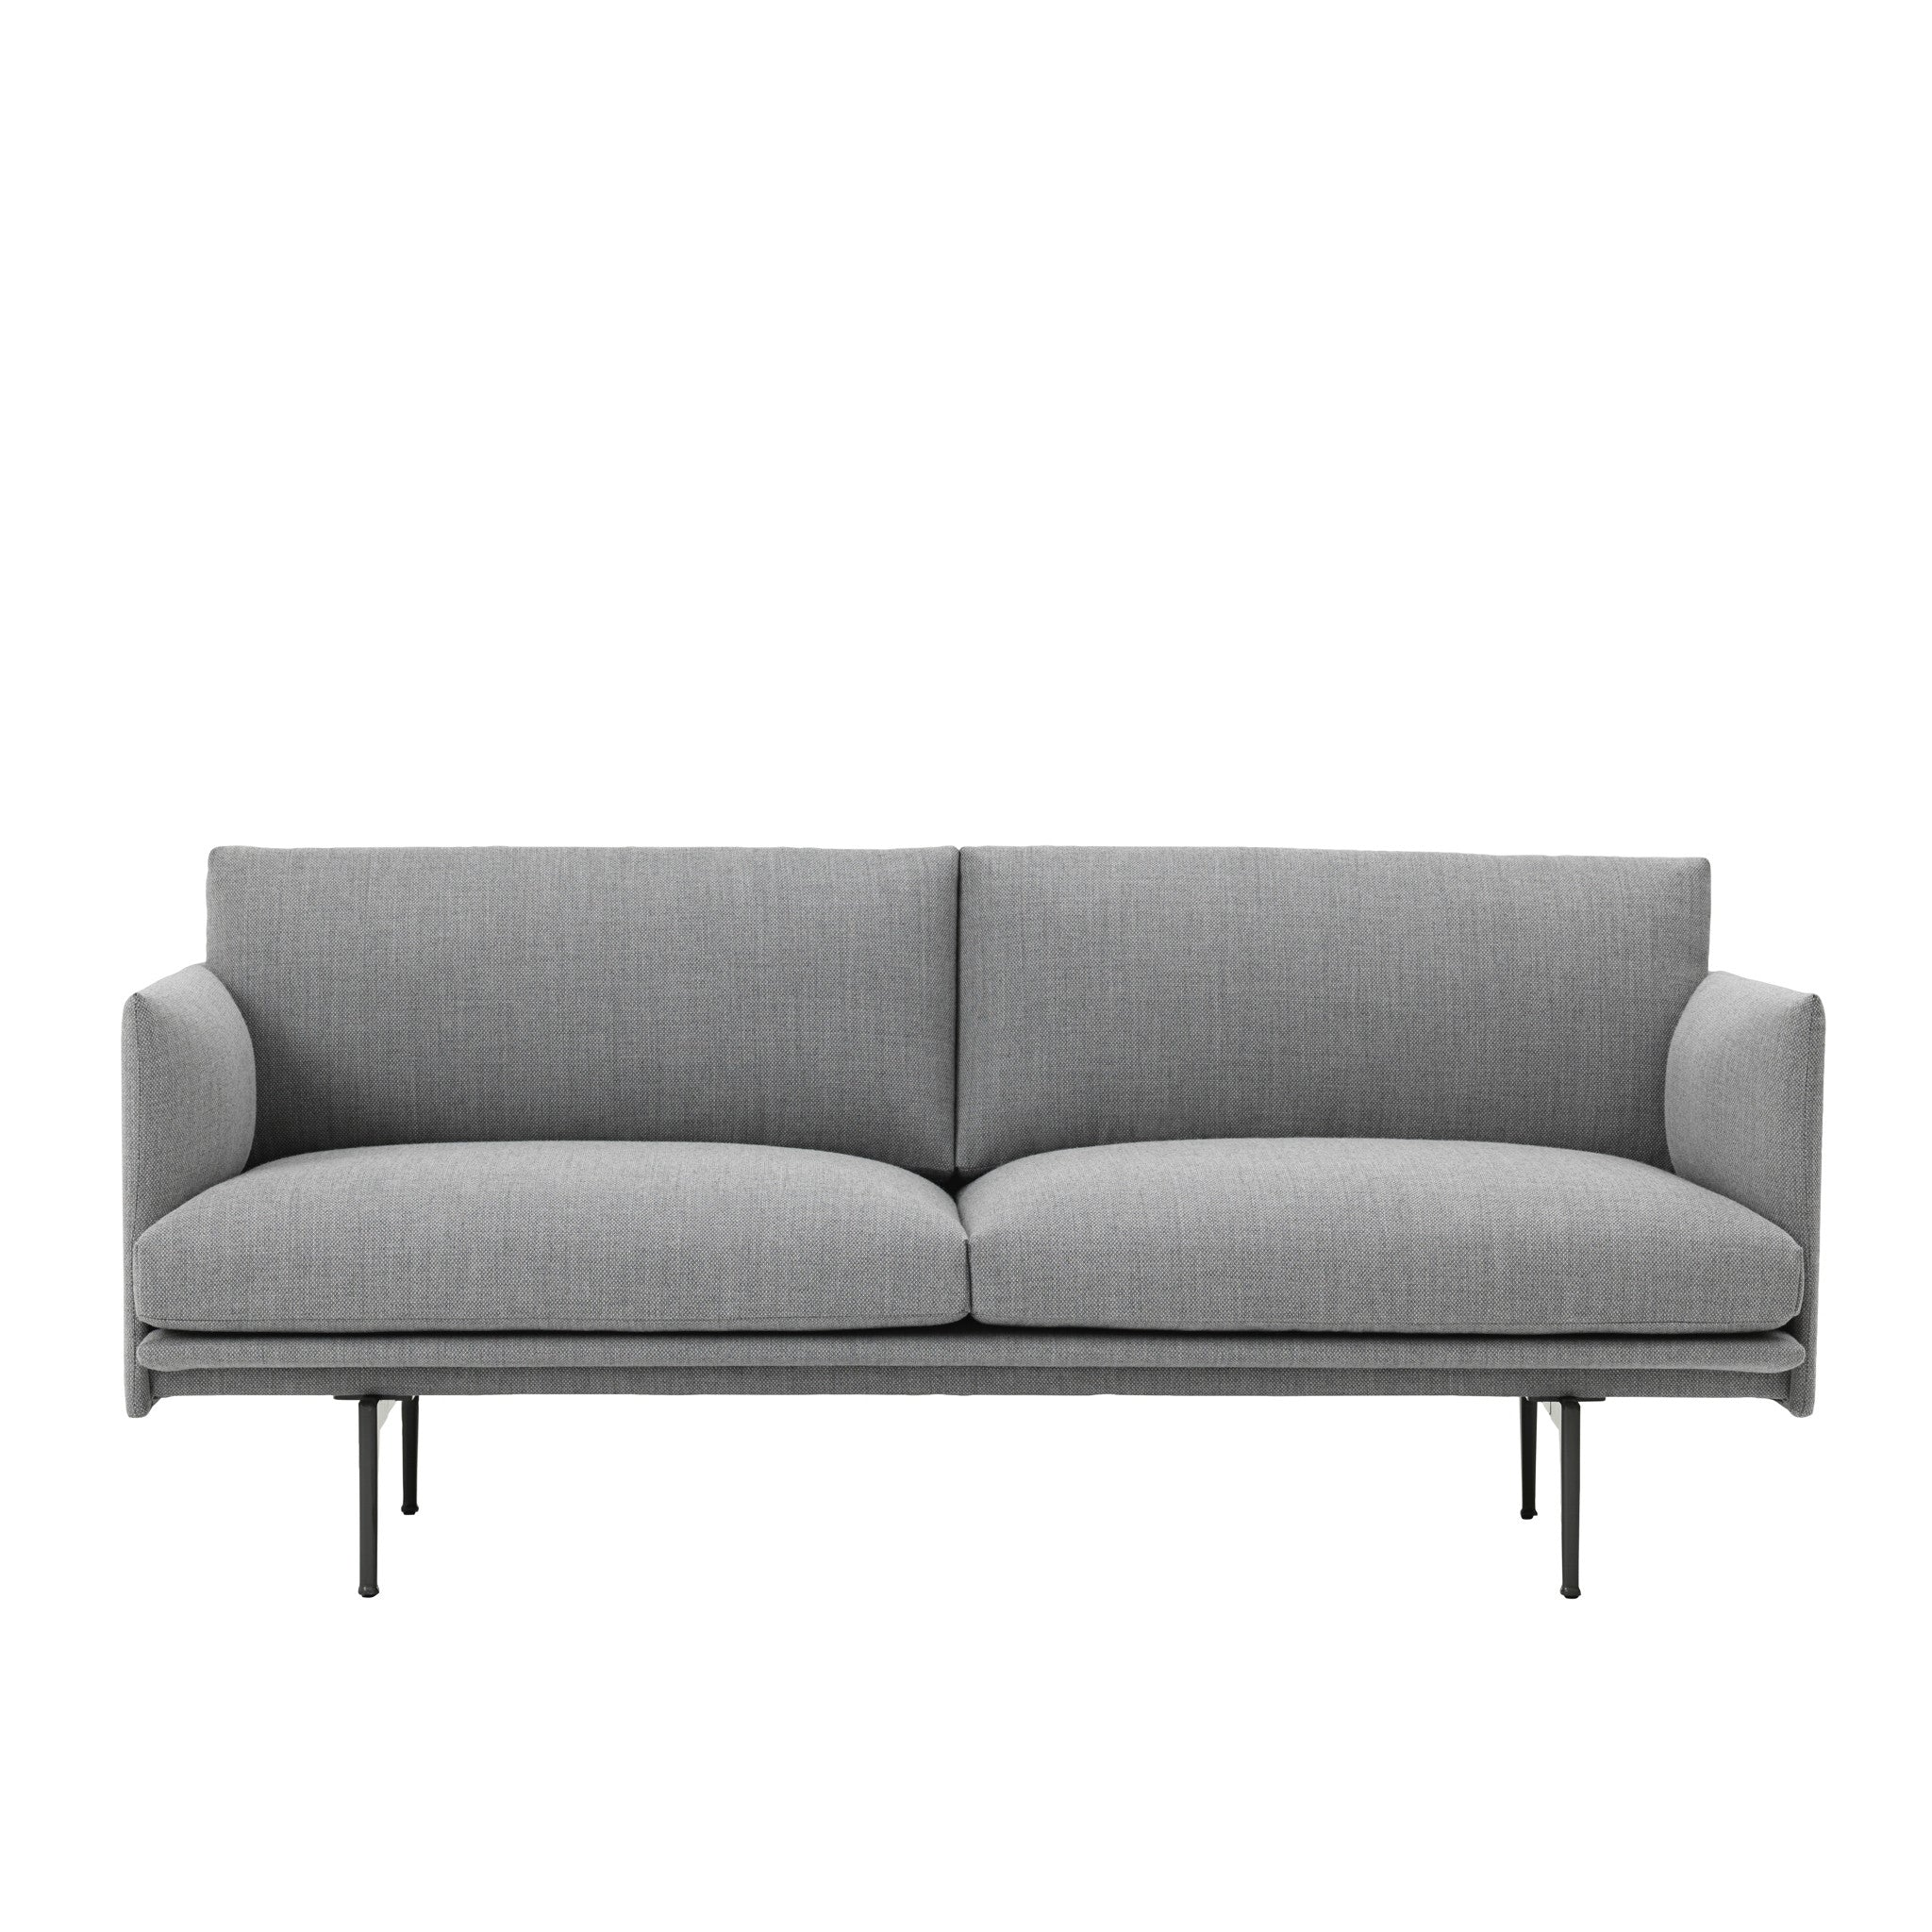 Fabulous Outline Sofa By Muuto Haus Interior Design Ideas Inamawefileorg